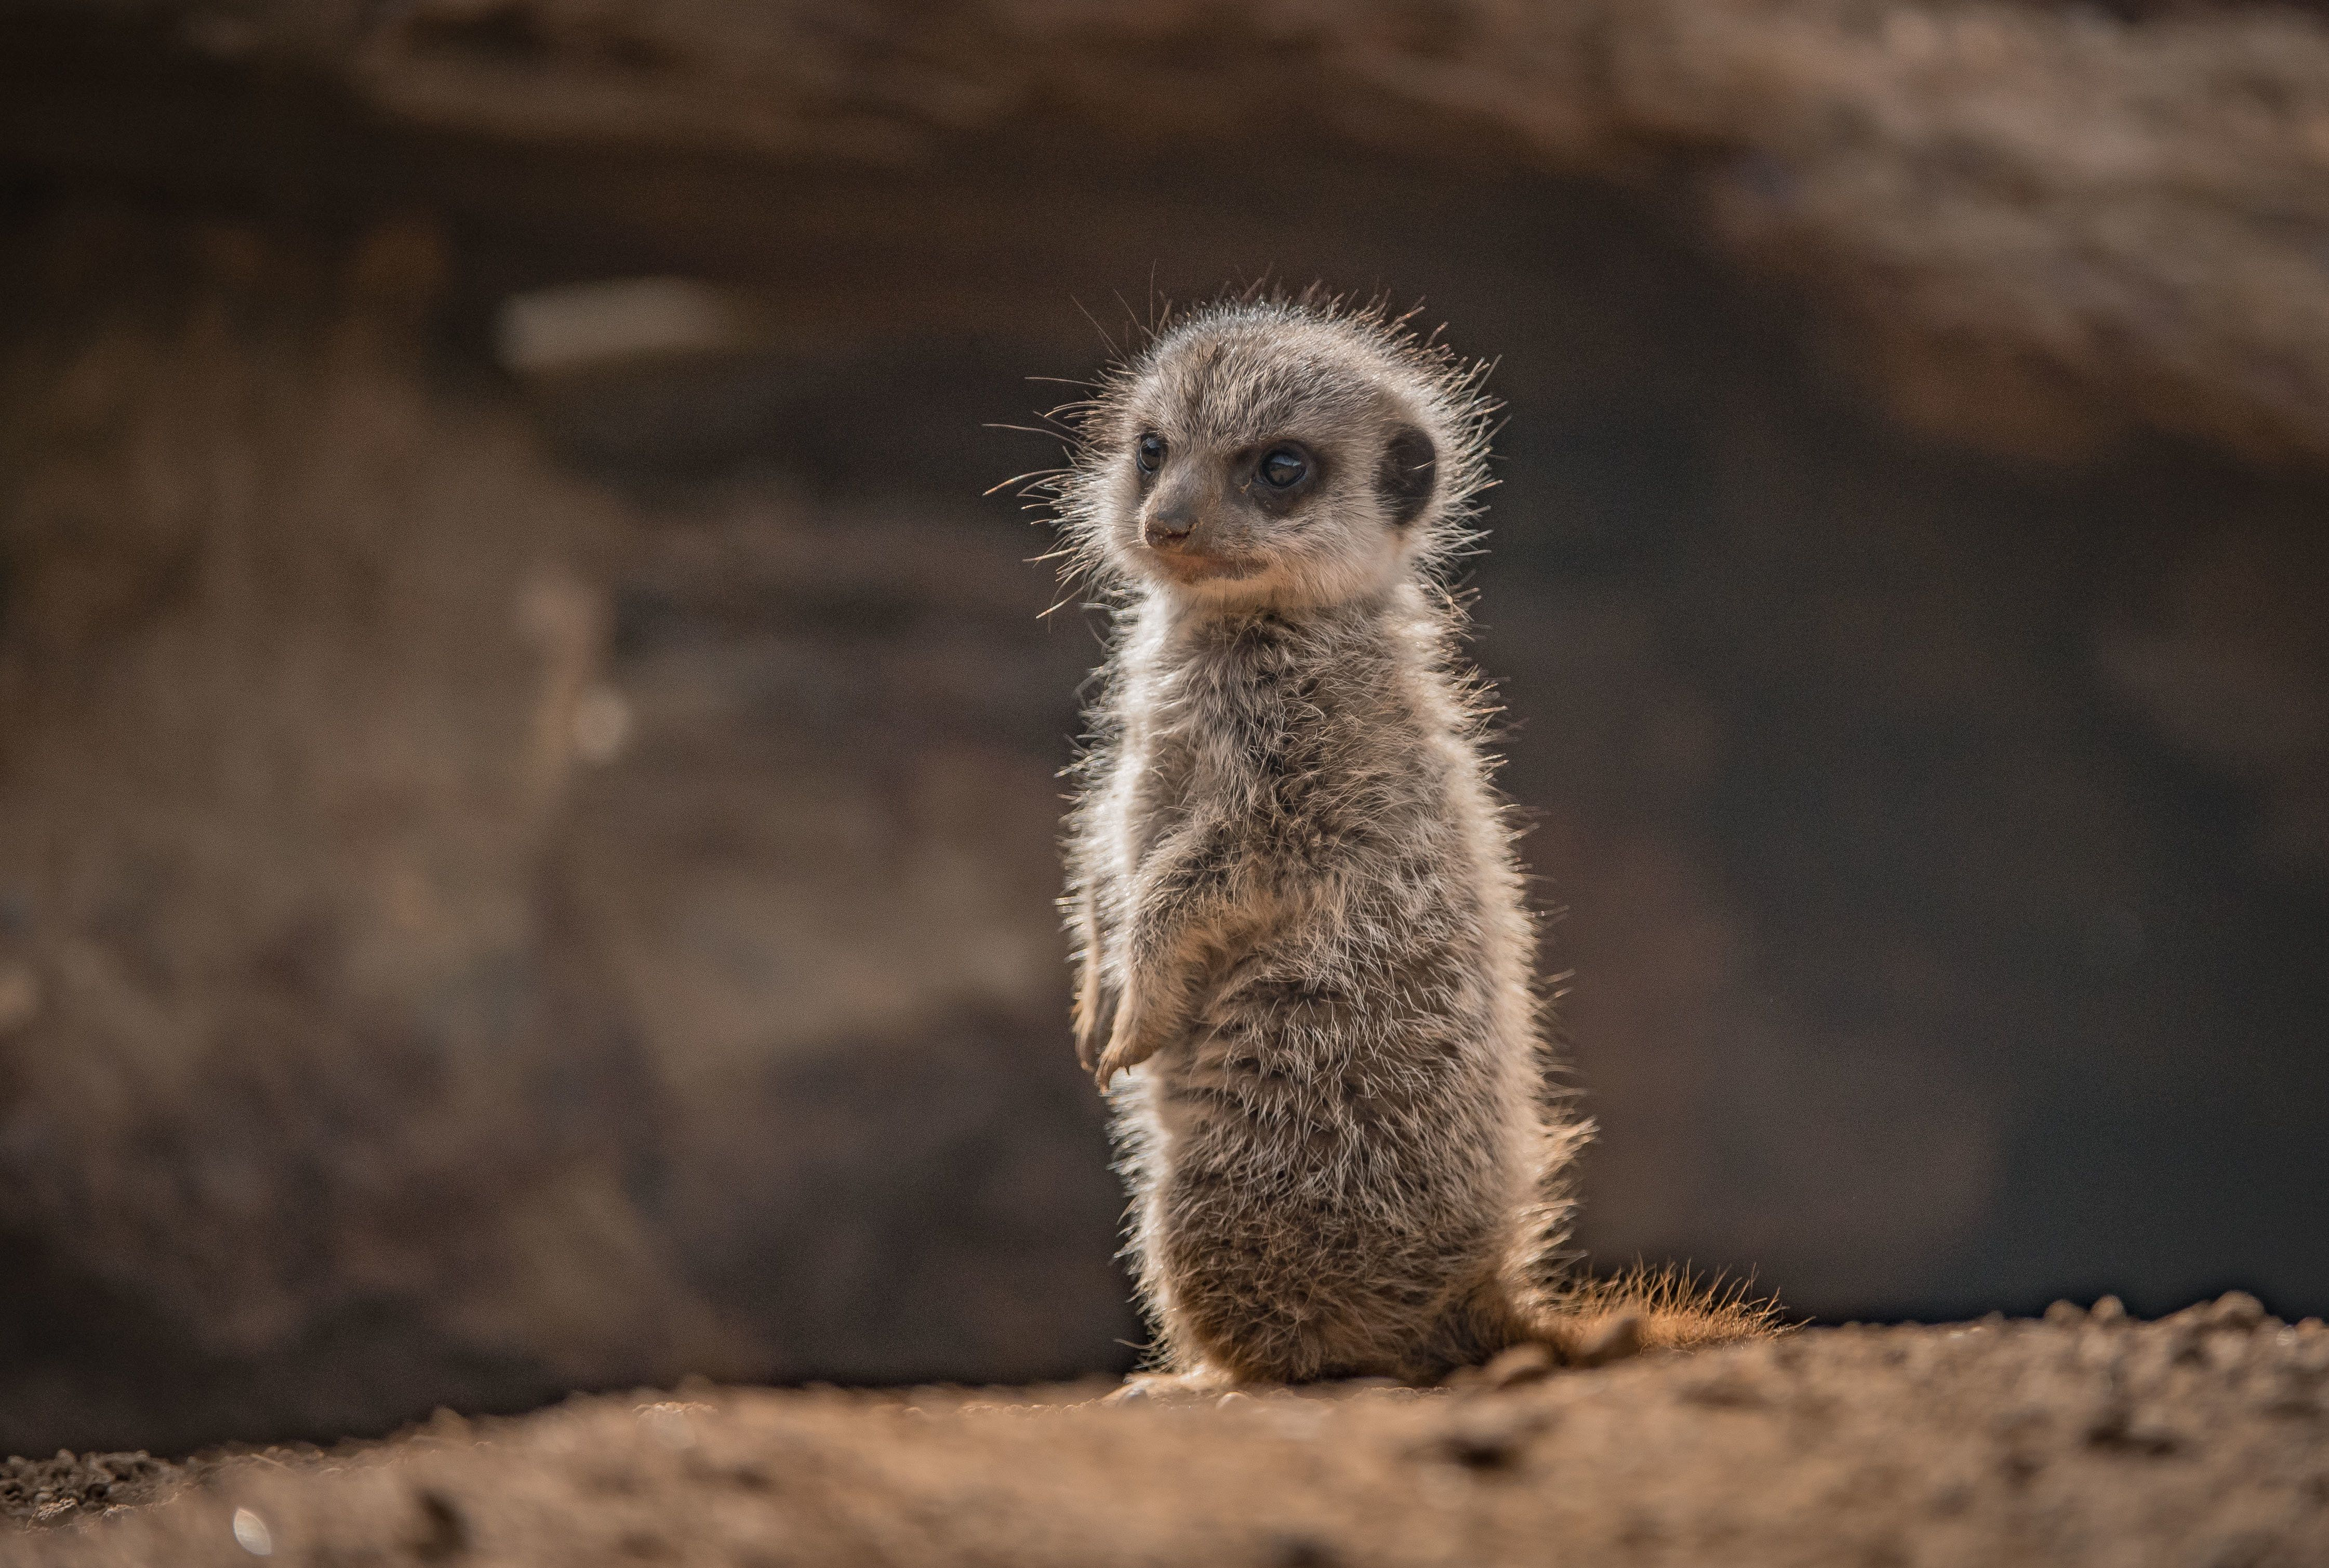 5 Cute Animals To End The Week: Baby Meerkats And L'Oréal The Frenchie